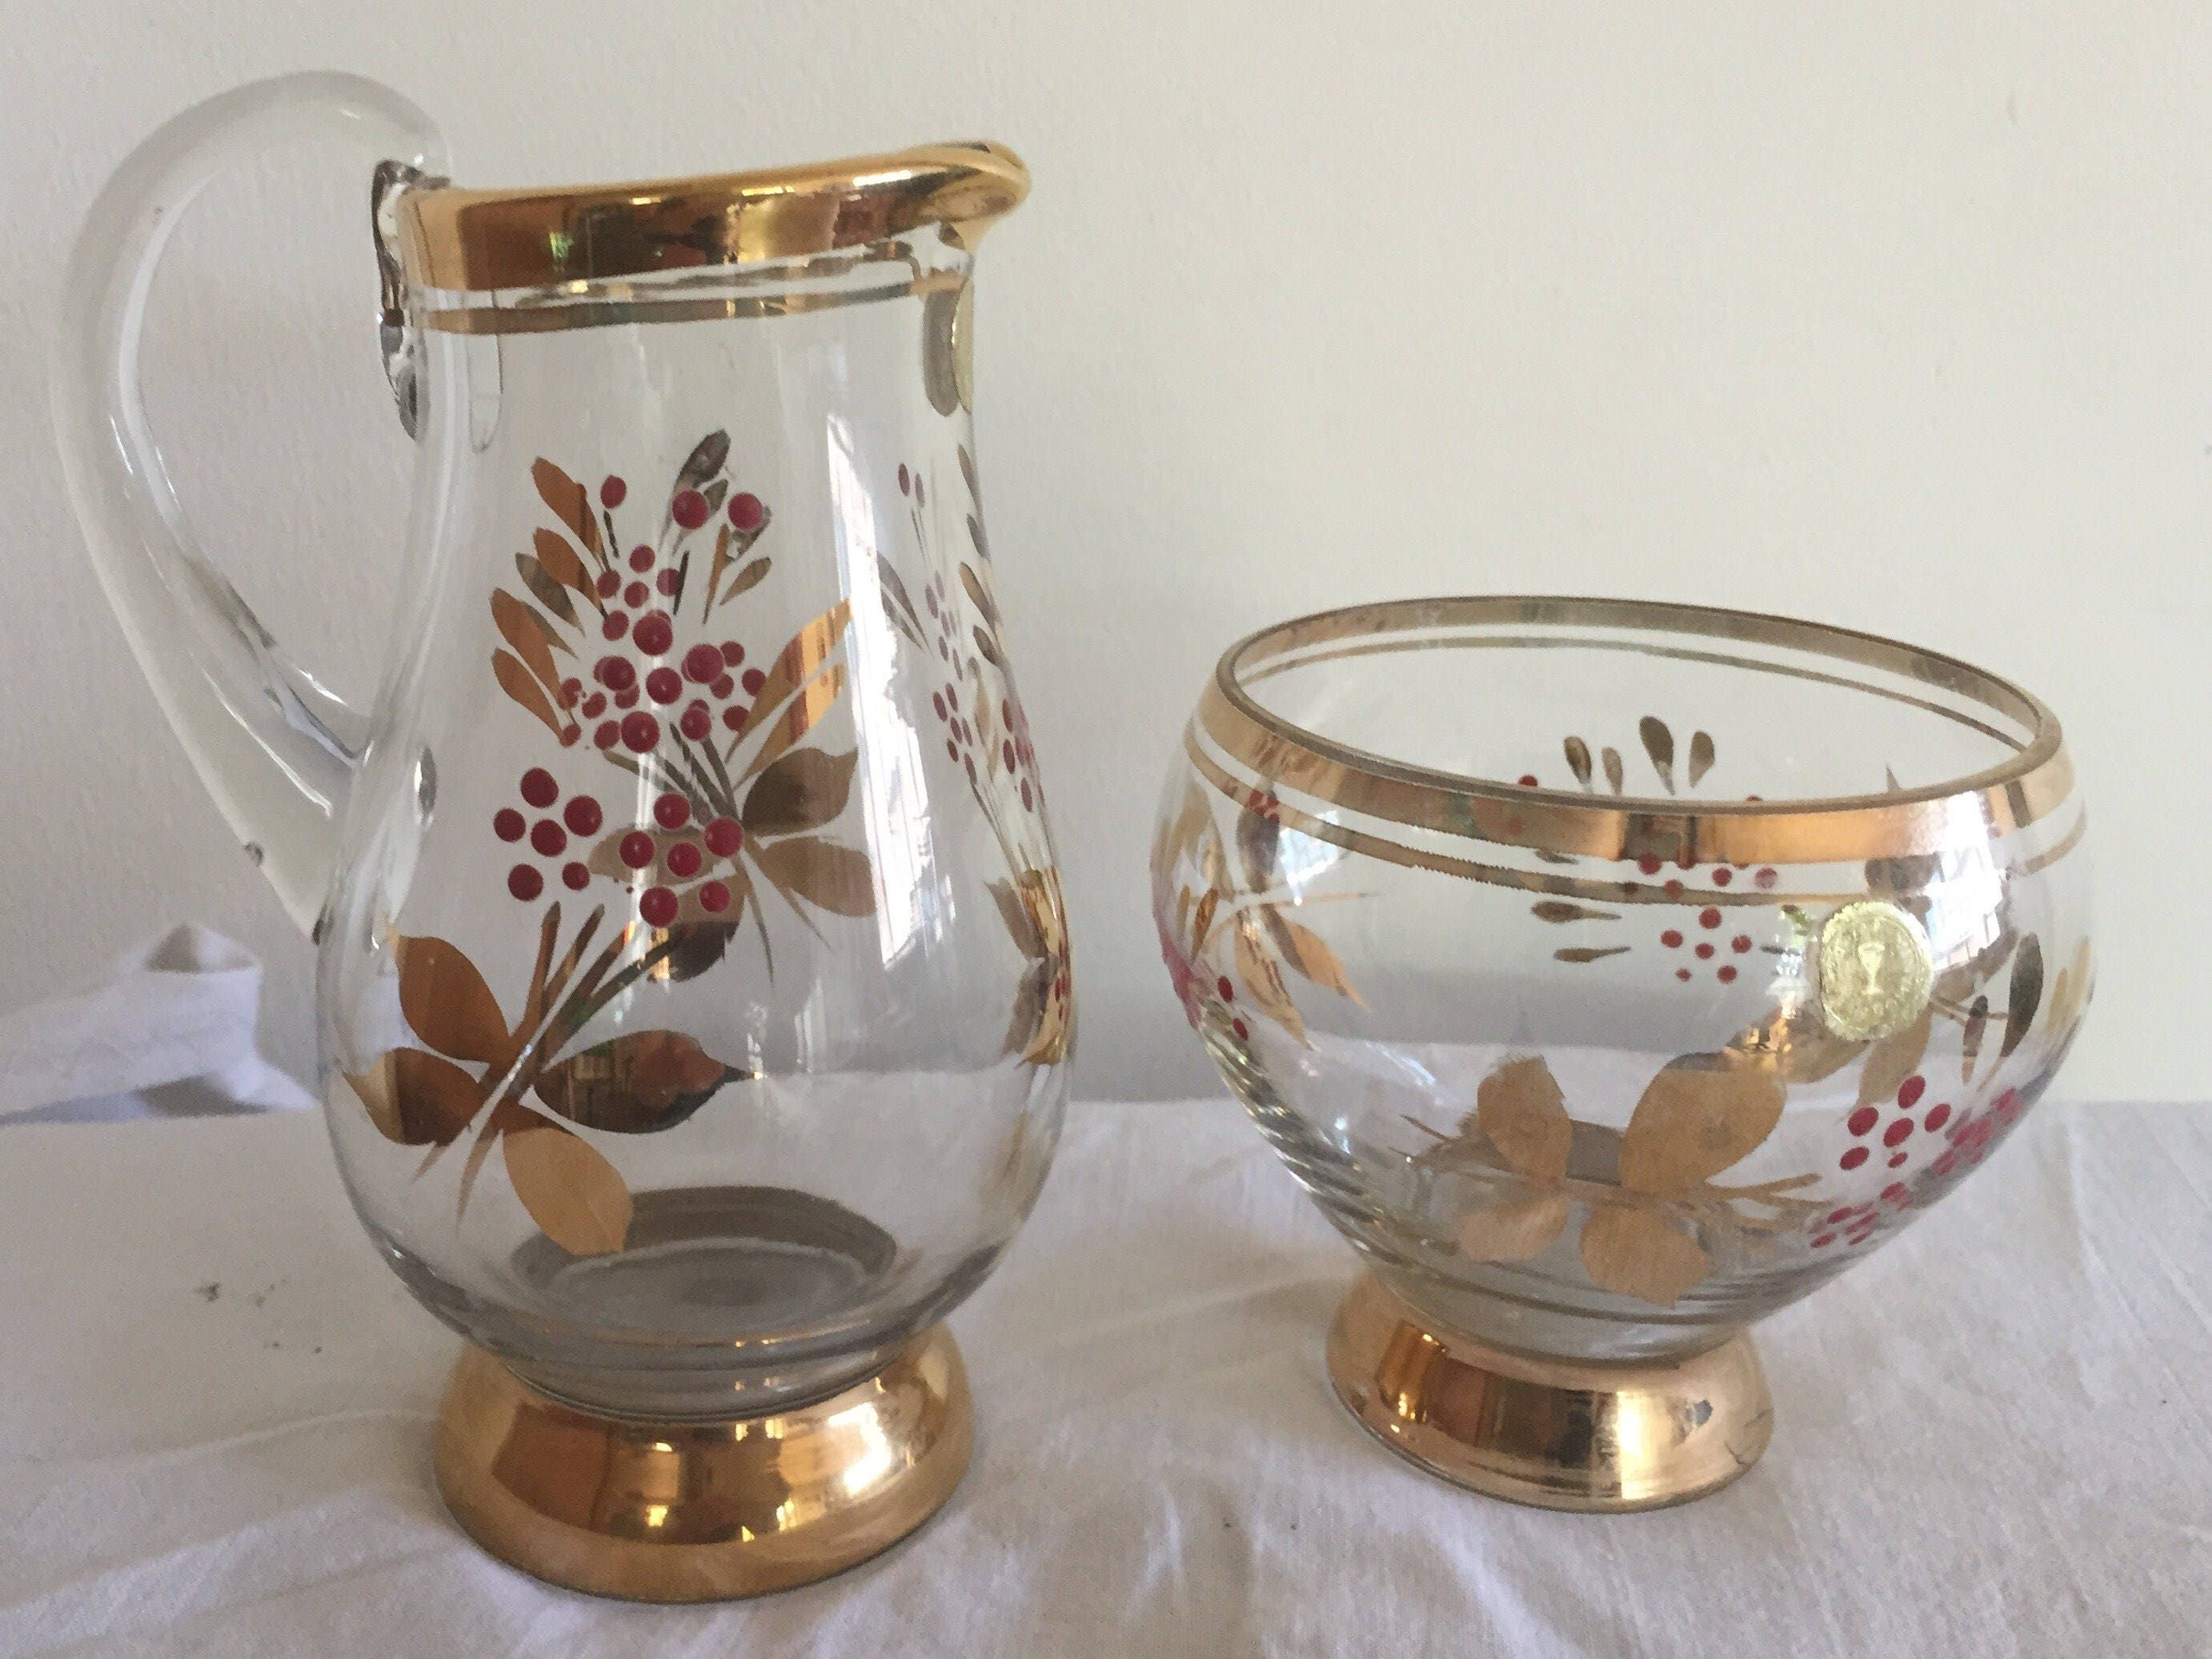 A pretty vintage Romanian Bohemian glass jug and bowl set with gold and red decor